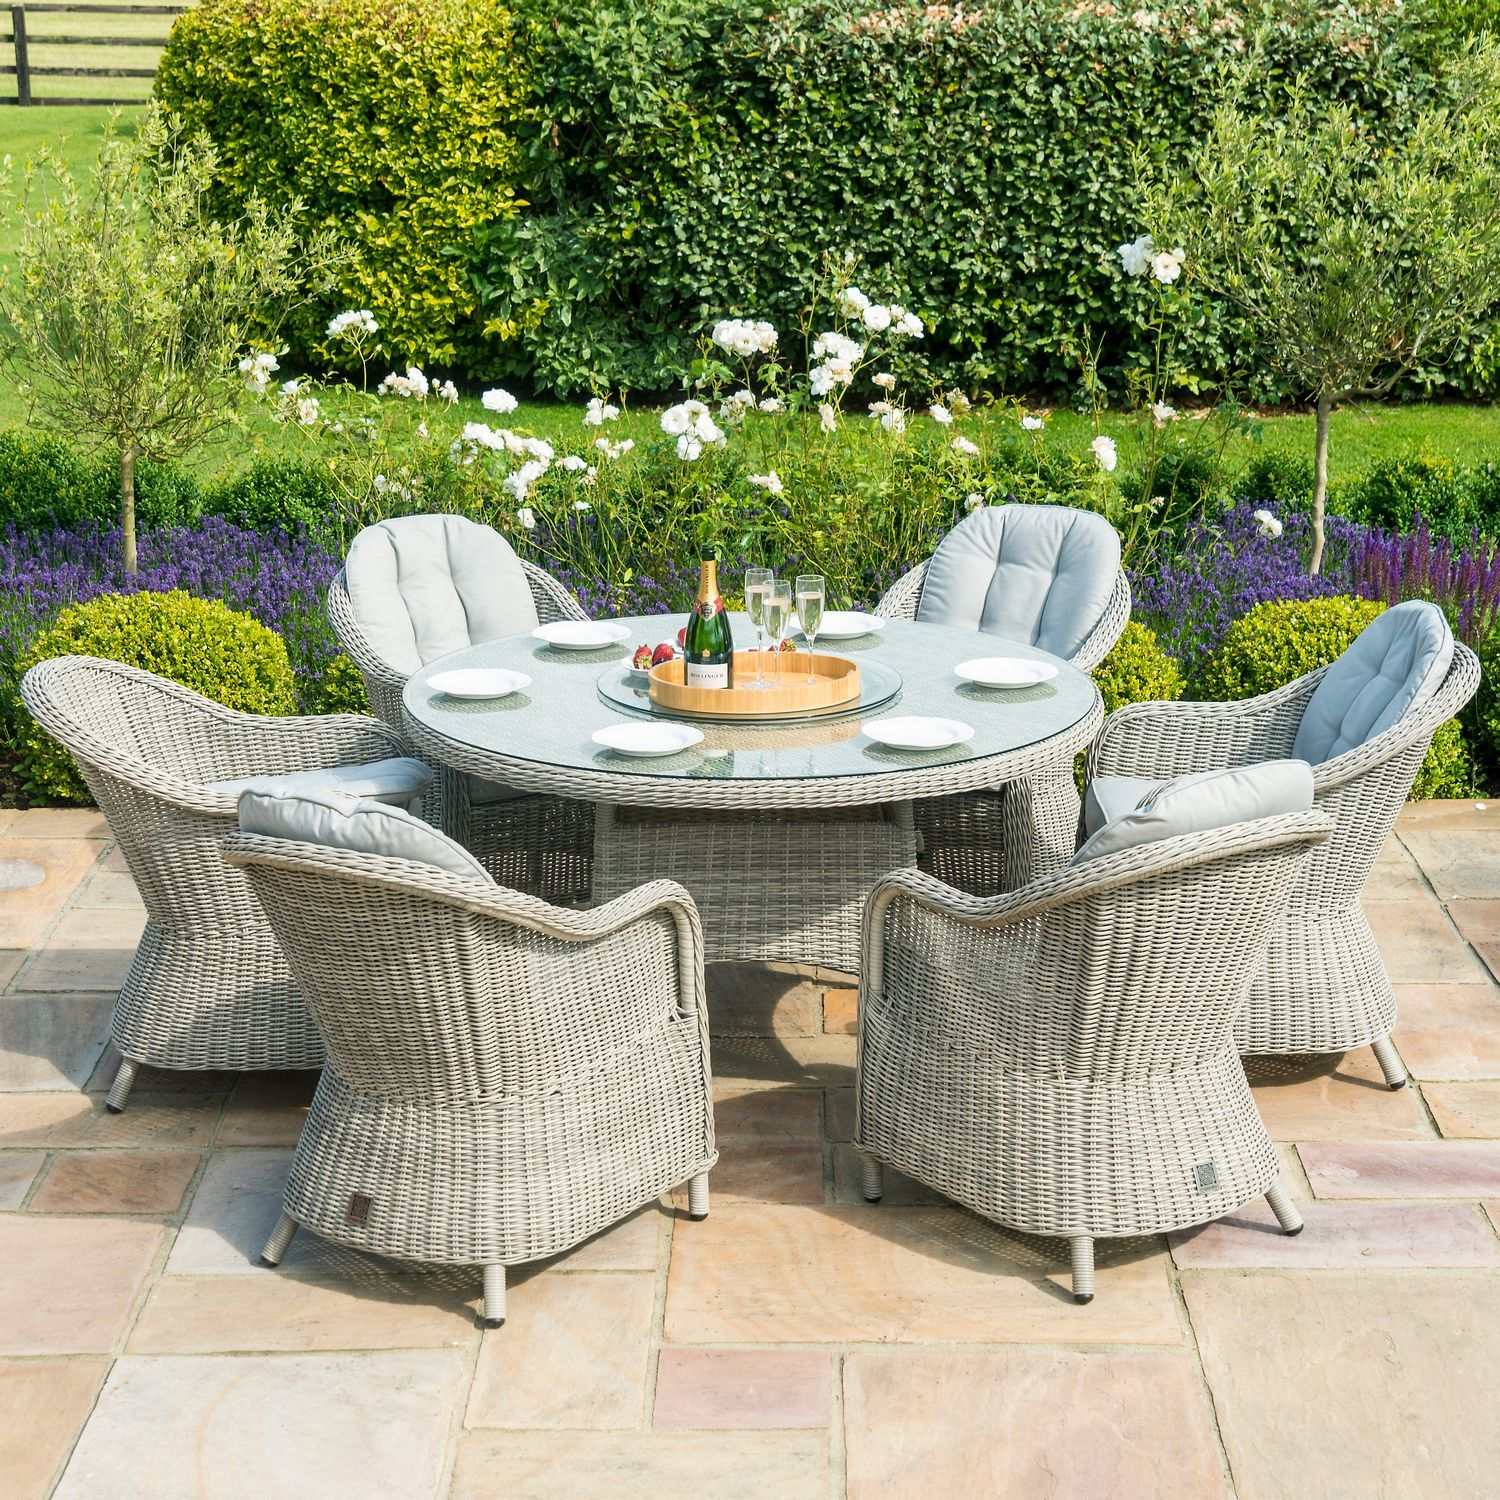 Maze Rattan Garden Furniture Oxford 6 Seat Round Dining Set With Heritage Chairs In 2020 Rattan Garden Furniture Round Dining Set Garden Dining Set